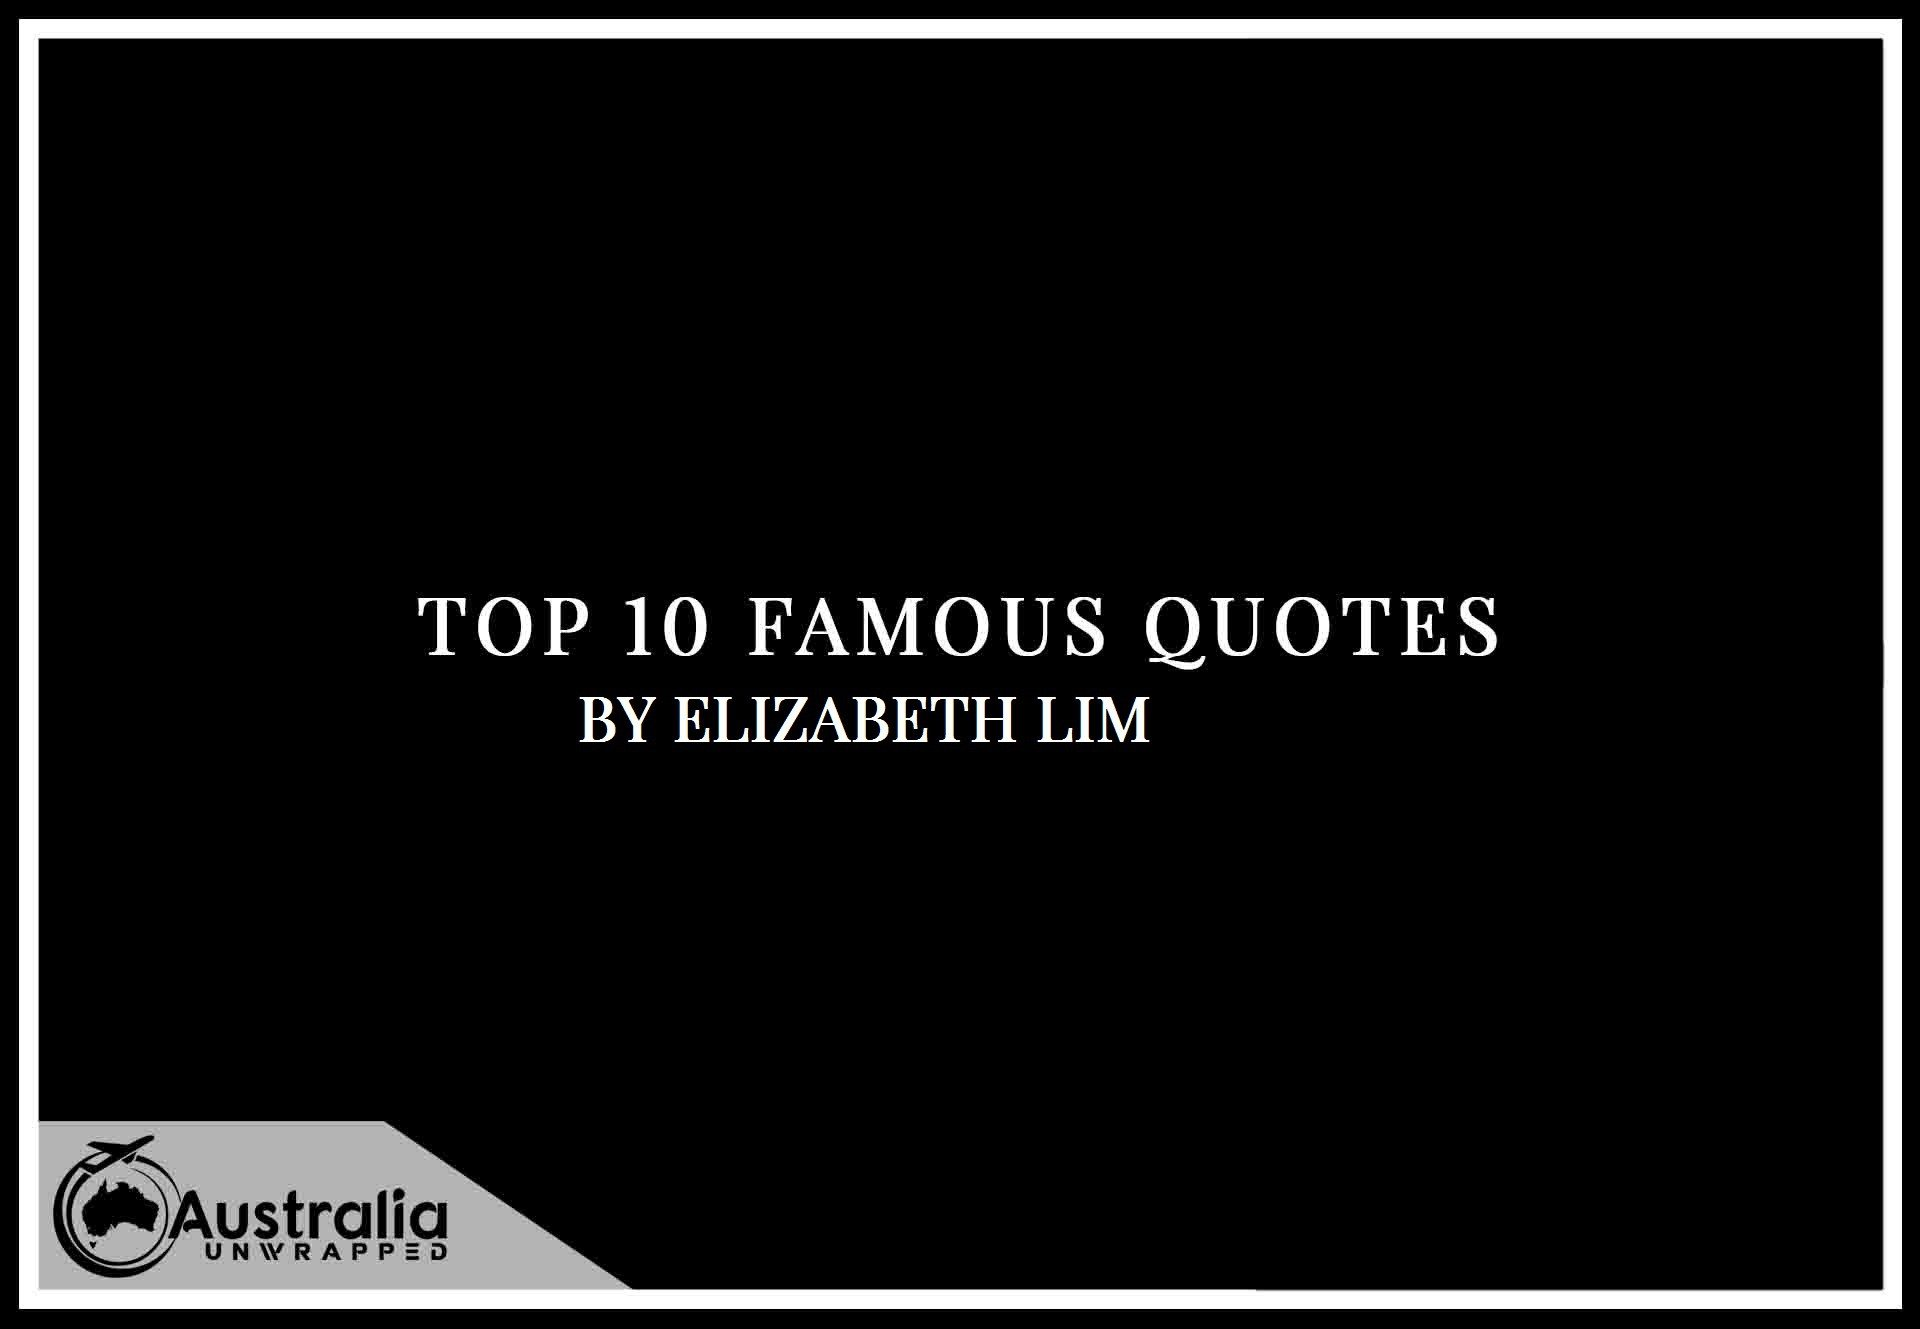 Elizabeth Lim's Top 10 Popular and Famous Quotes